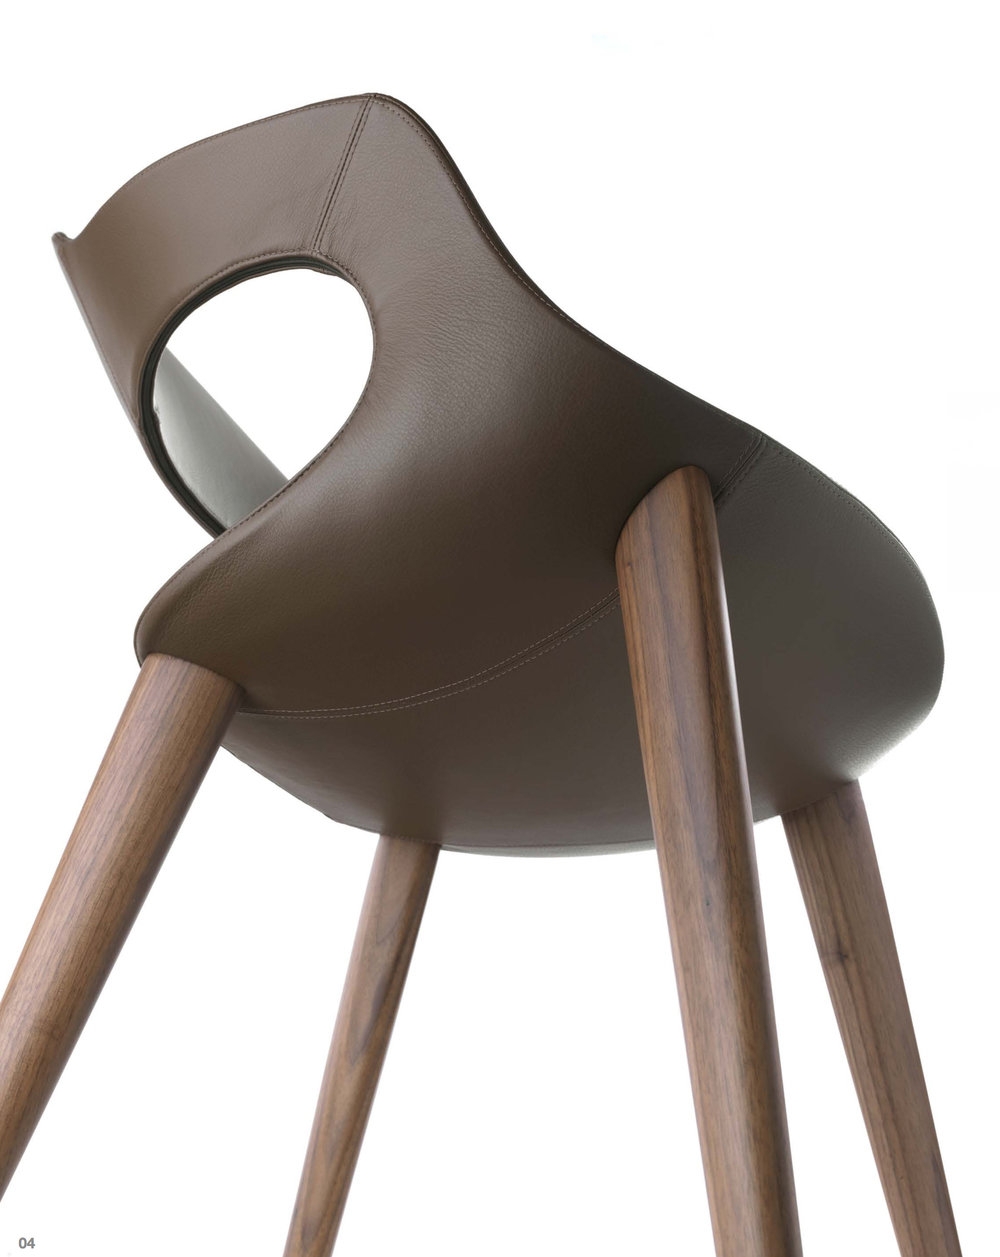 contemporary-stools-chairs-dining-leather-modern-designer-chairs and stools00004.jpeg